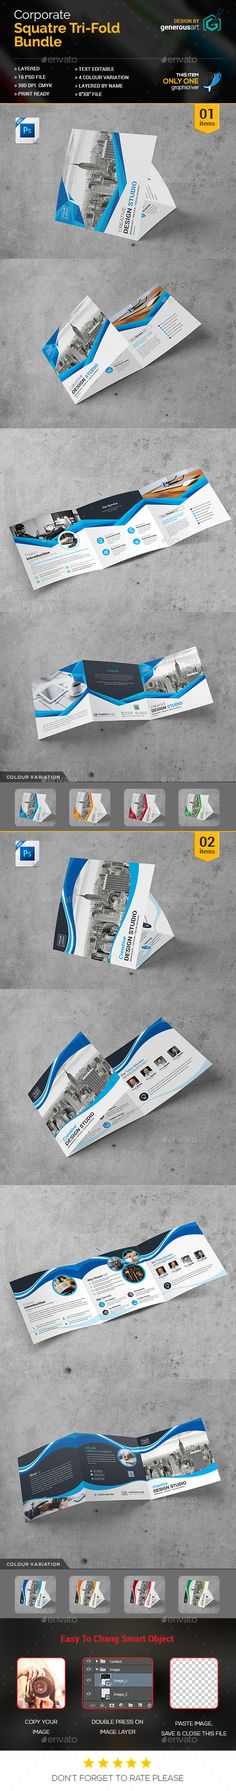 2 Square Tri-Fold Brochure Template PSD. Download here: http://graphicriver.net/item/bundle_square-trifold-2-in-1/16826477?ref=ksioks